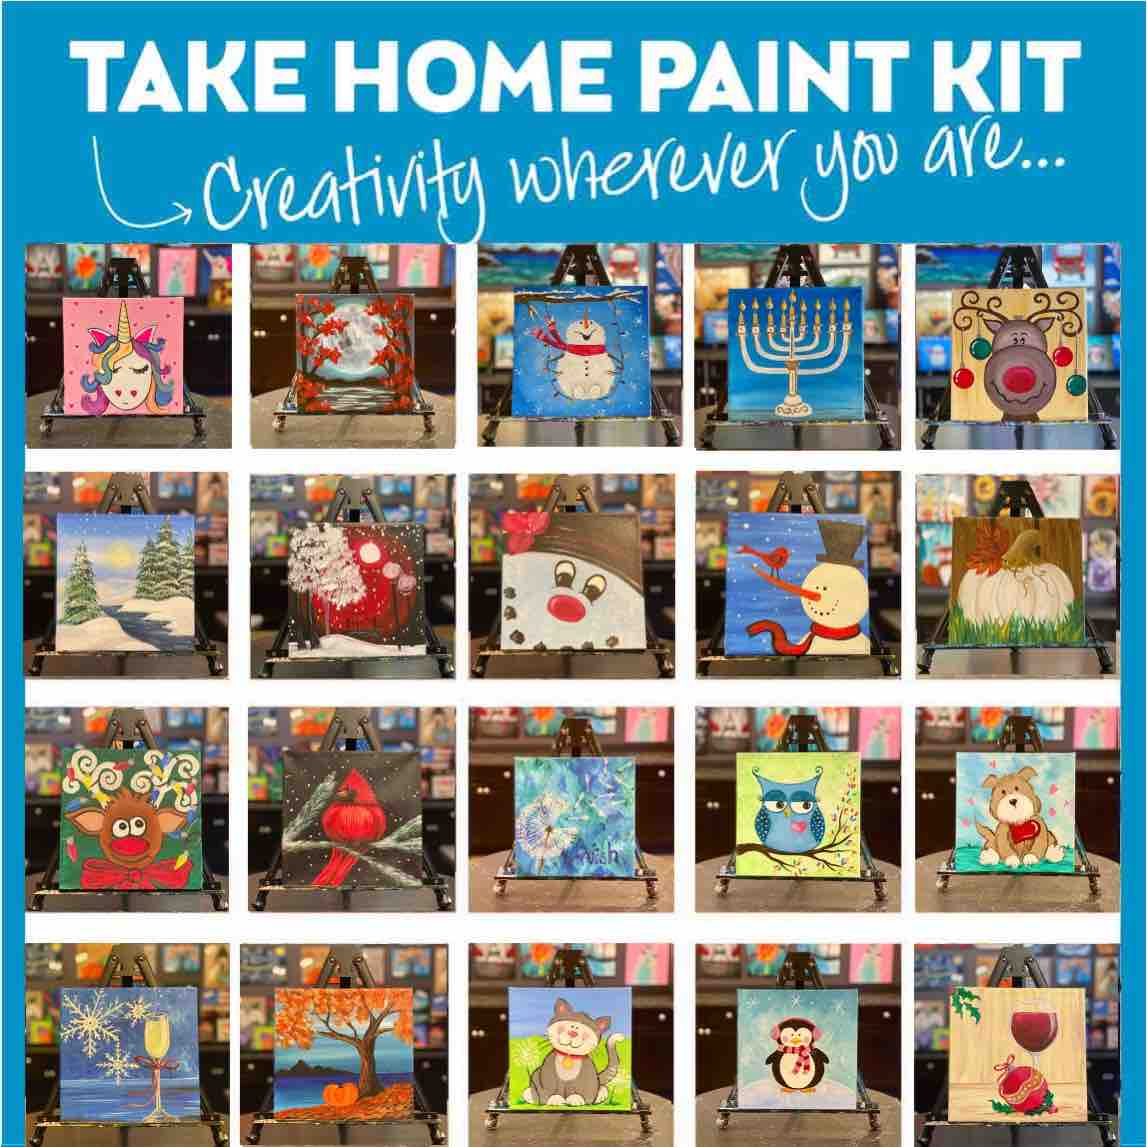 Holidays At Home Self Guided Kits * Order Today - Pickup Tomorrow